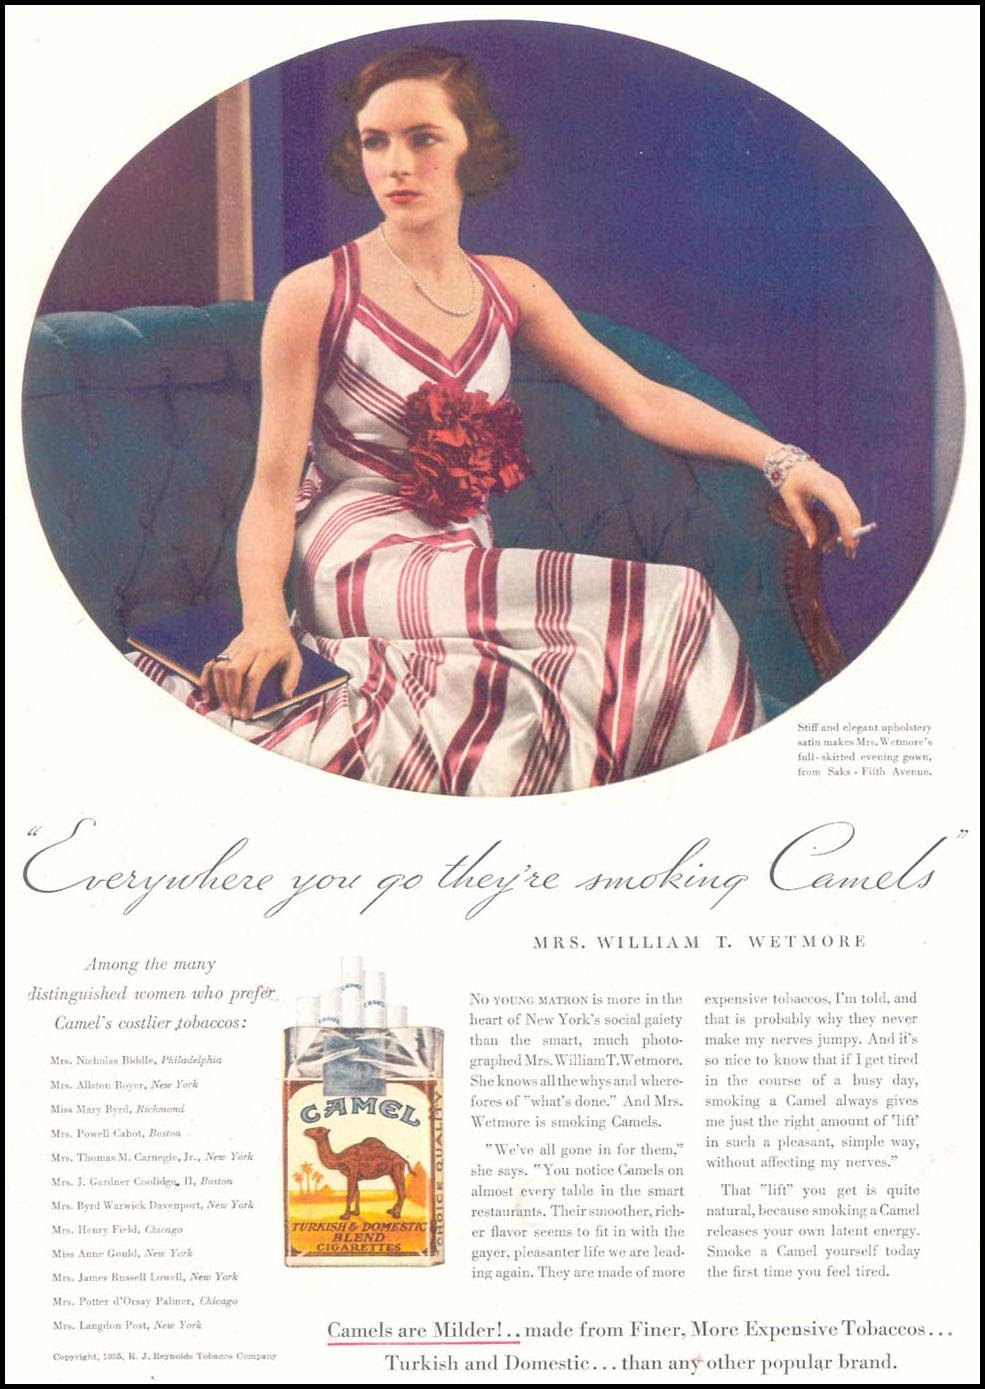 CAMEL CIGARETTES GOOD HOUSEKEEPING 03/01/1935